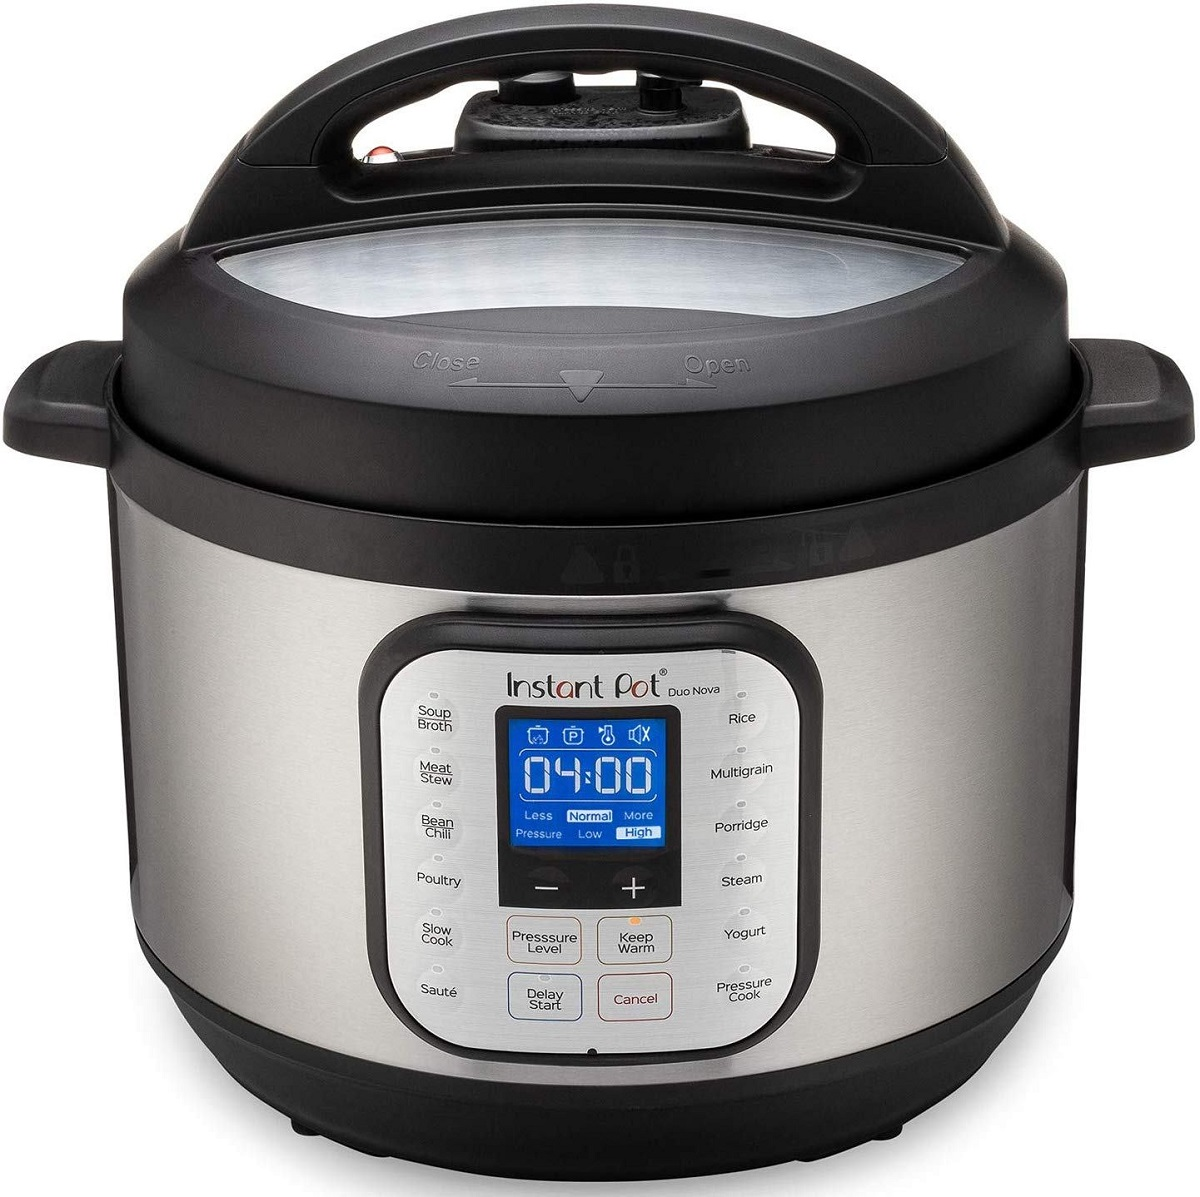 duo nova electric pressure cooker image